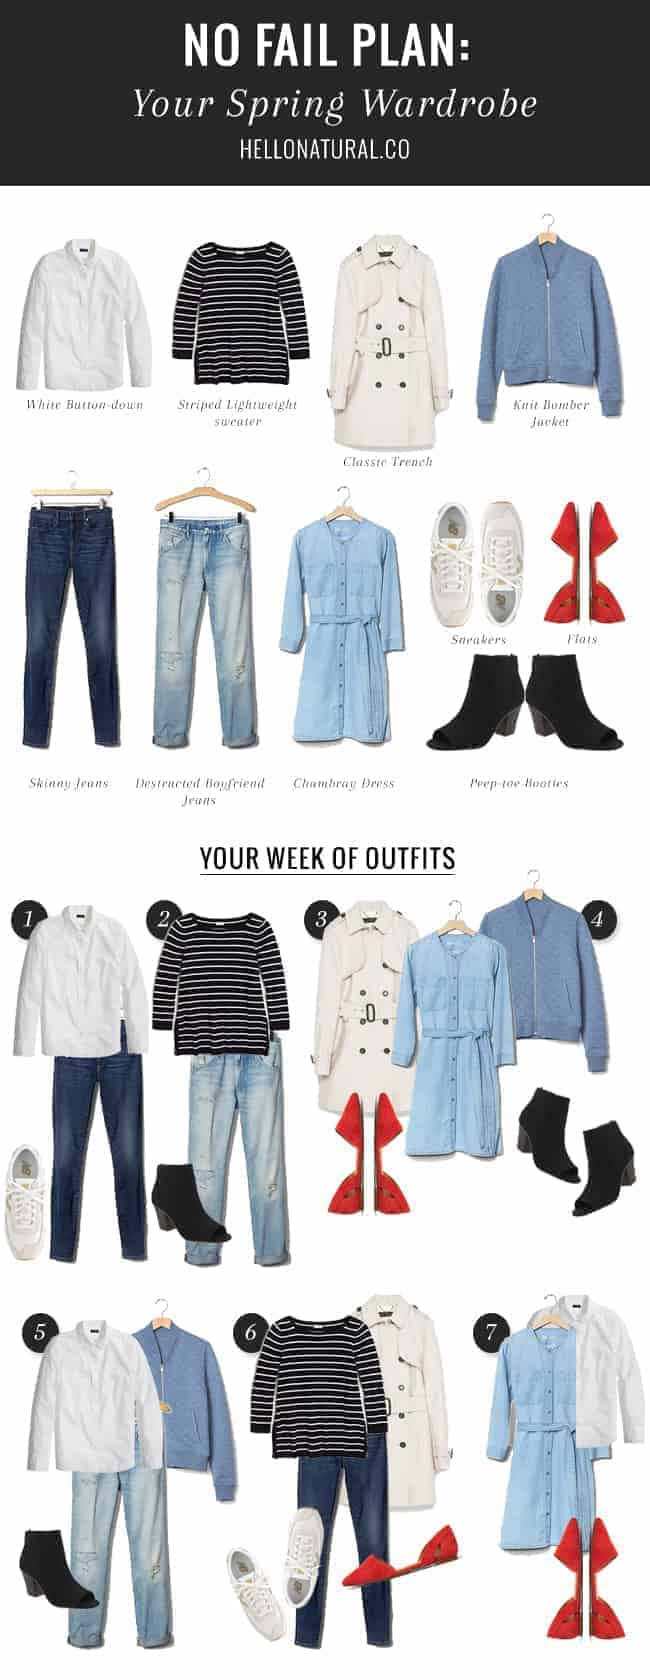 Wardrobe Must Haves: A Week Of Outfits From 10 Spring Wardrobe Essentials